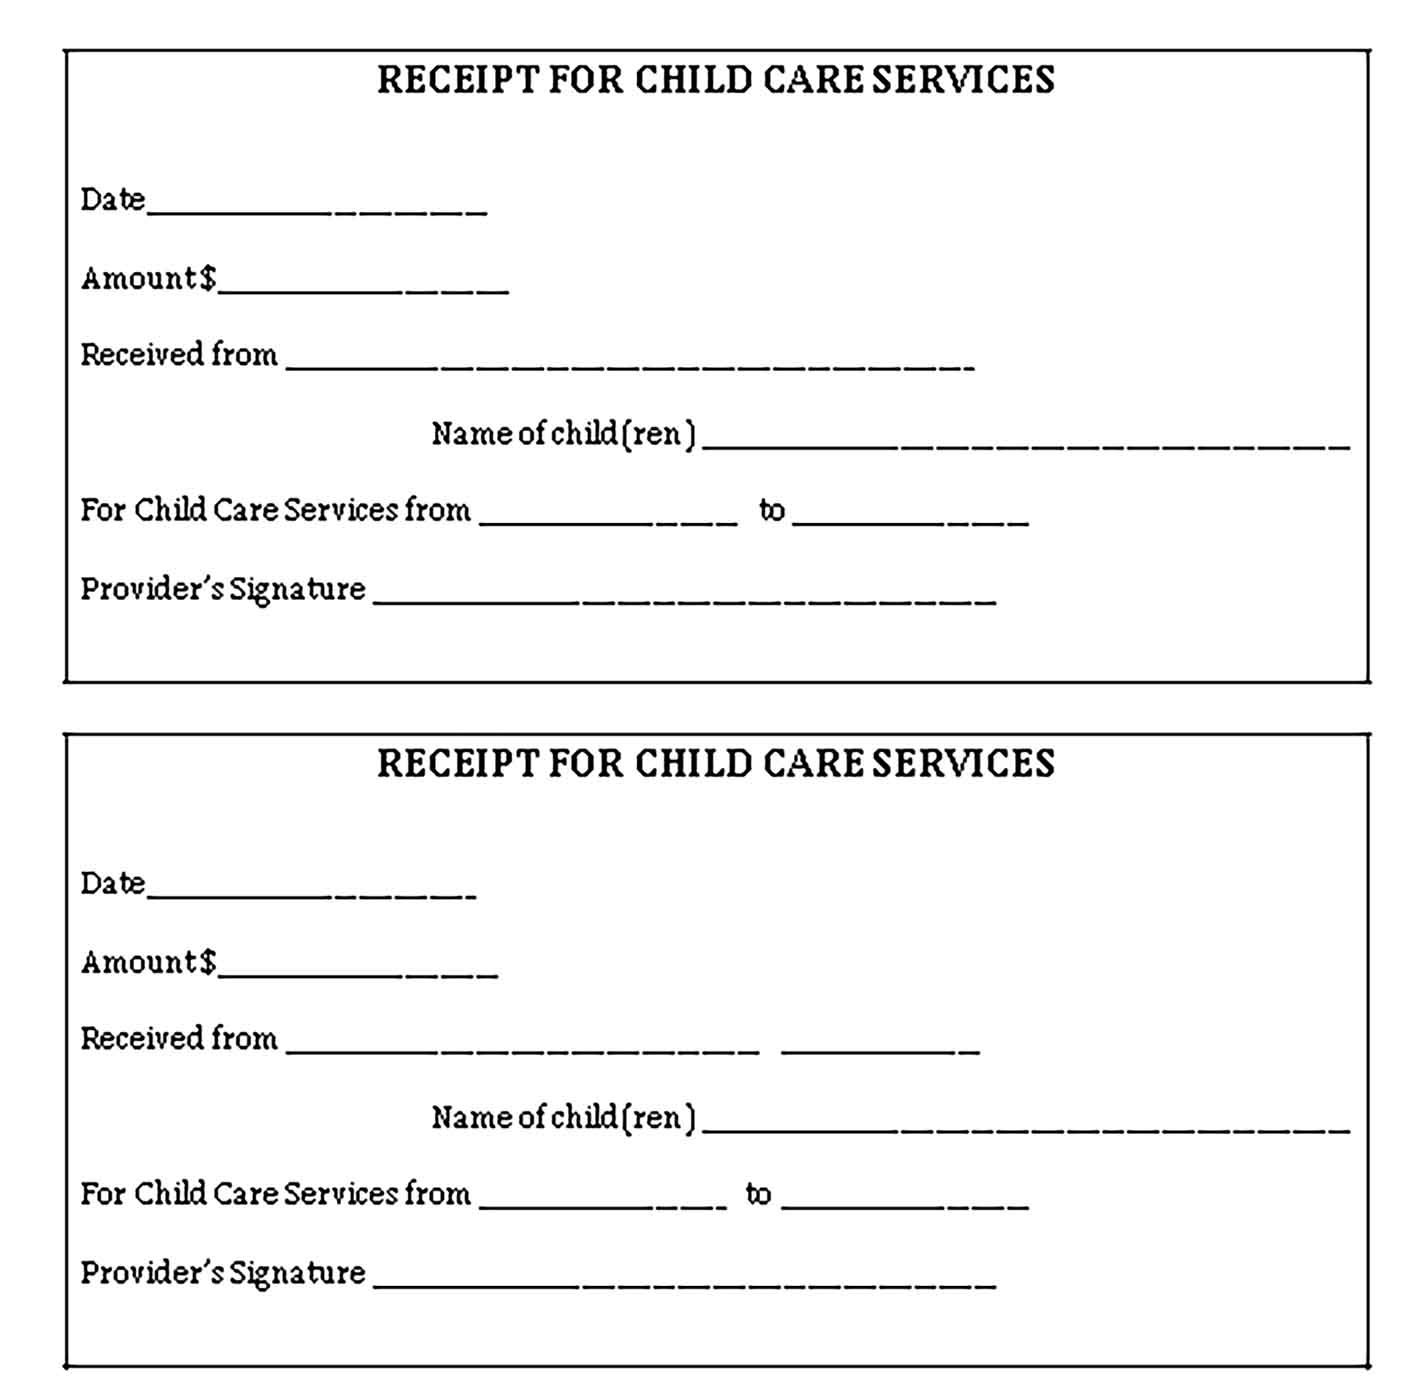 Sample Day Care Services Receipt 1 Templates